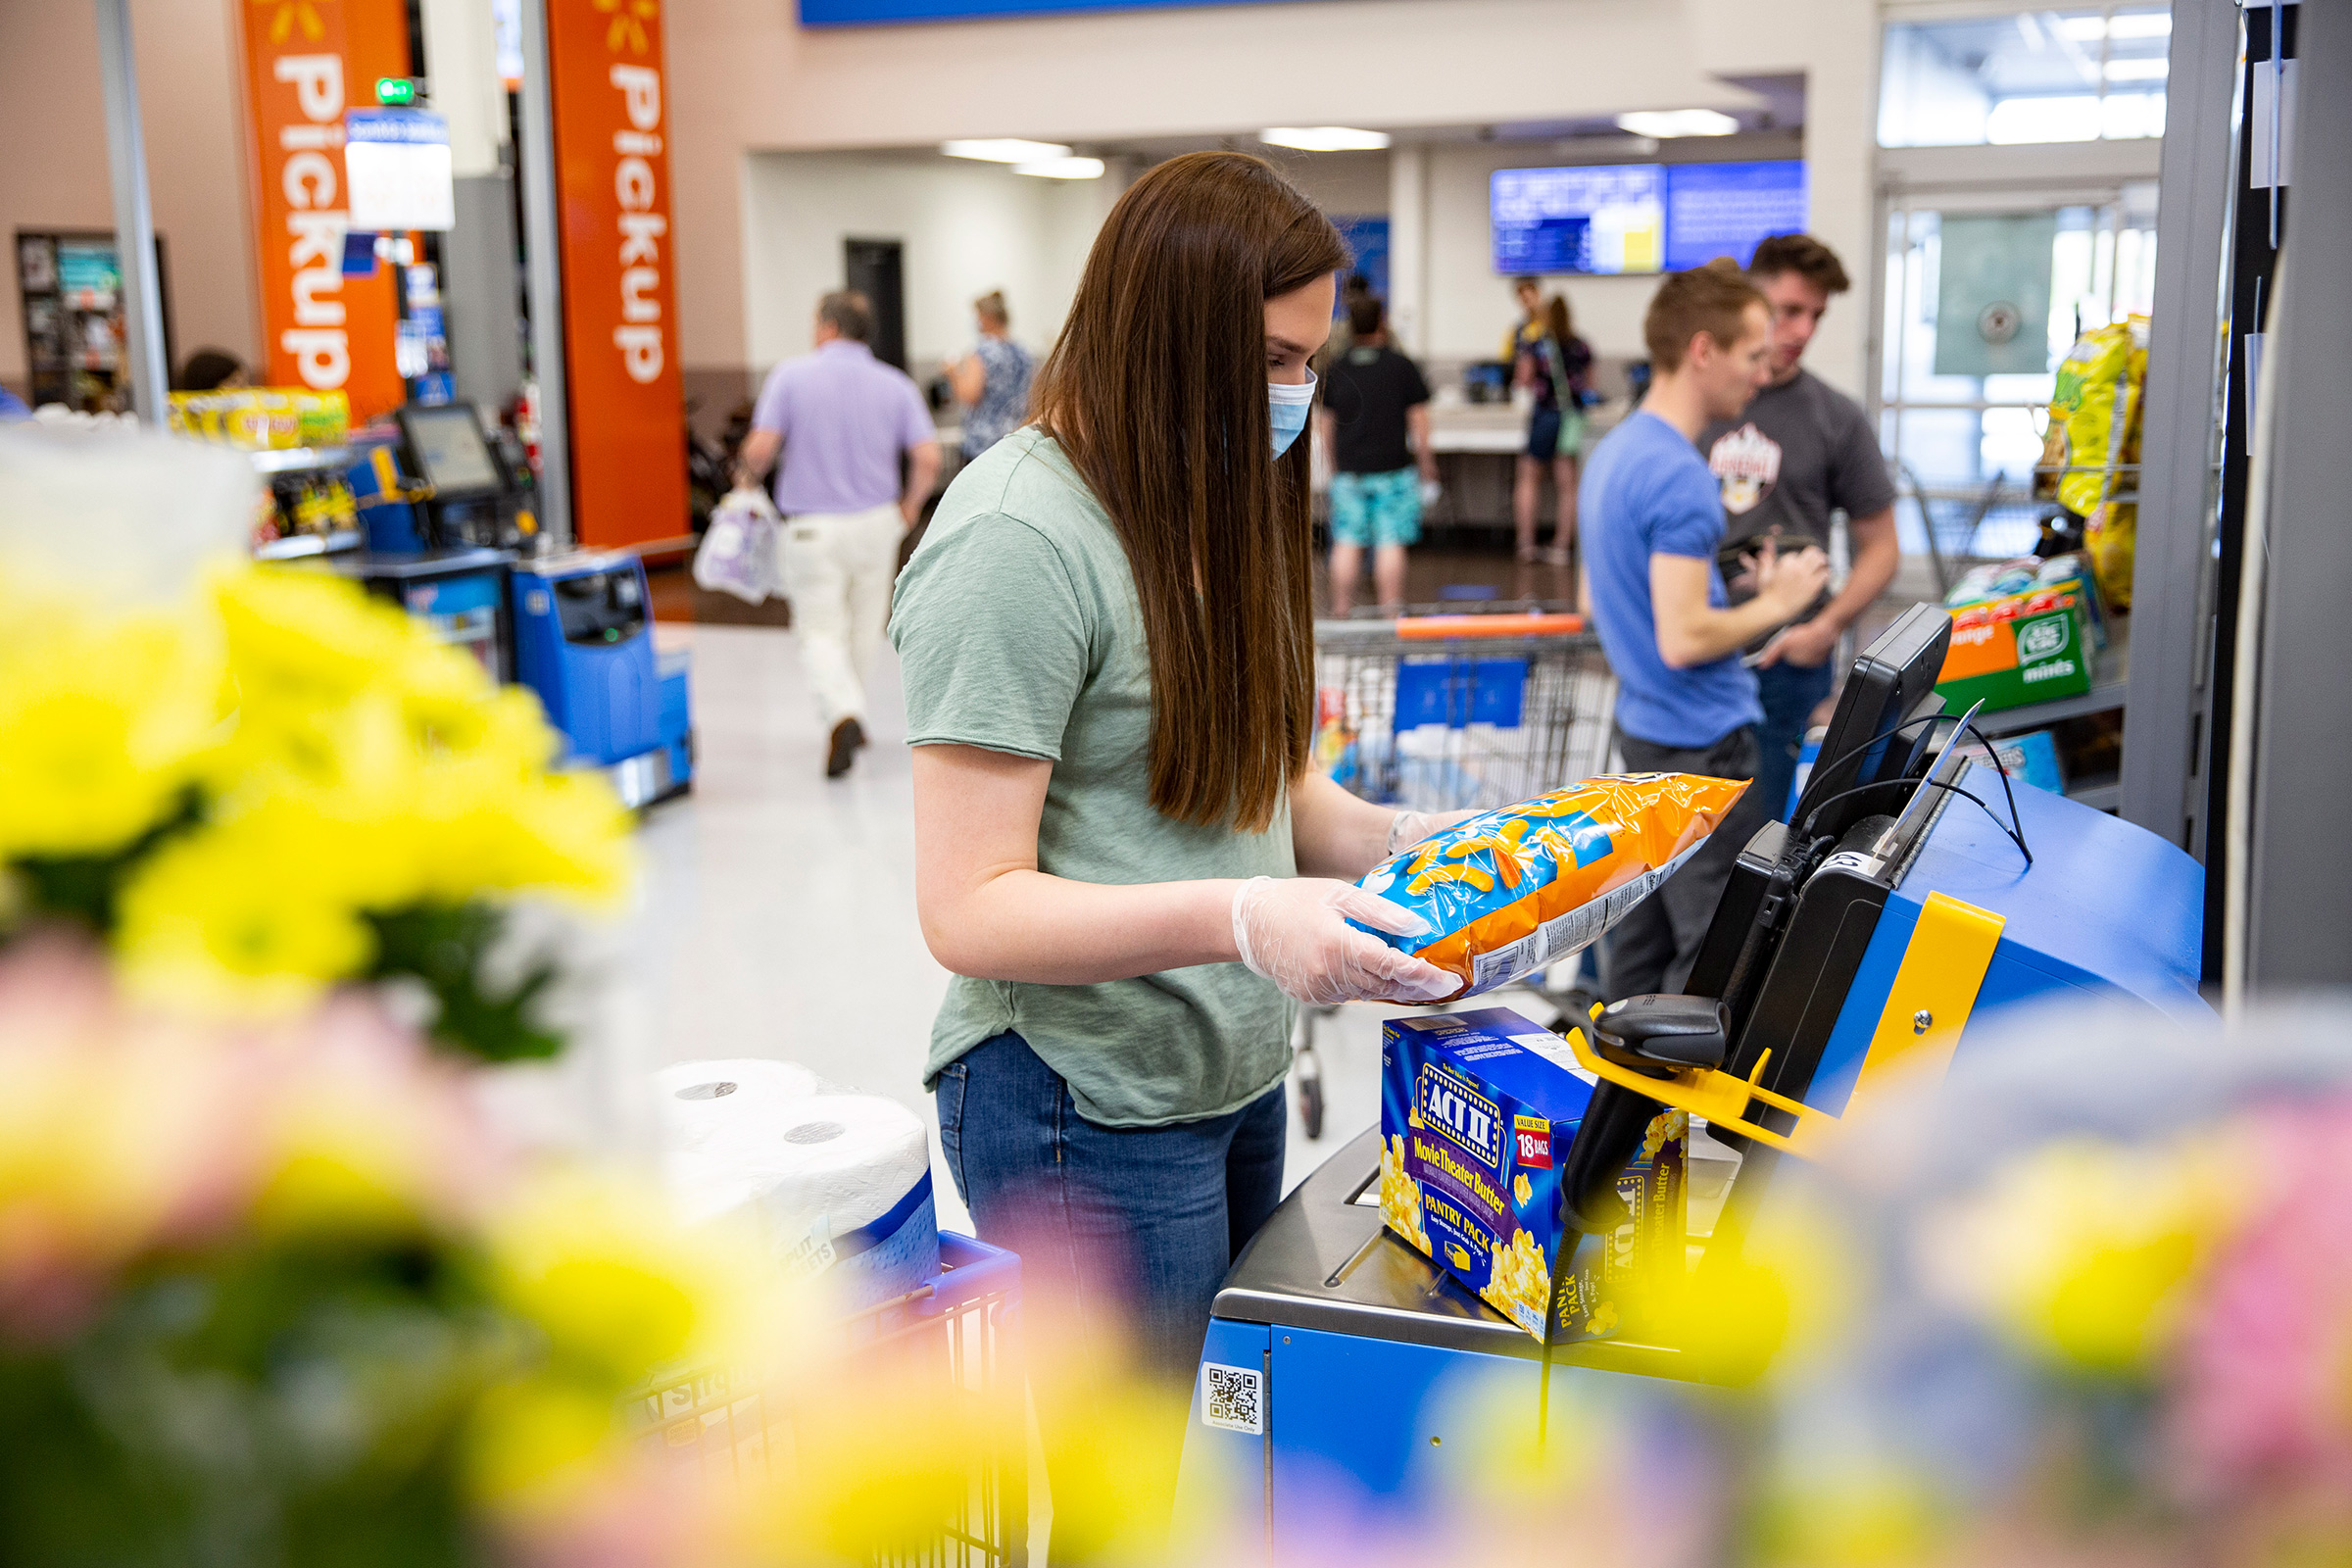 A customer uses self-checkout in a Walmart store in 2020.